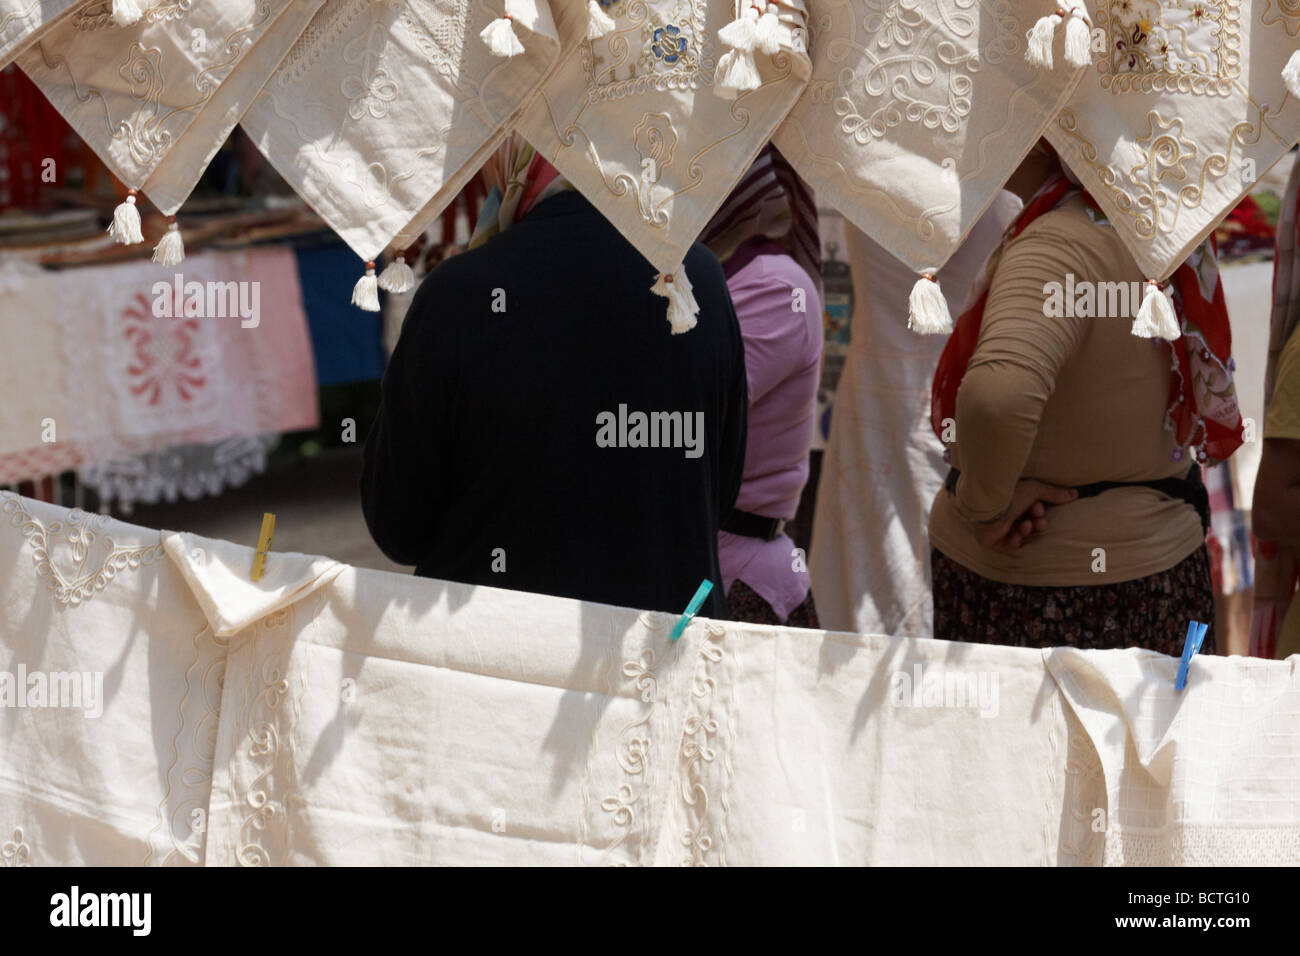 Richly coloured traditional fabric for sale at the market in a bazaar, Alanya Turkey - Stock Image